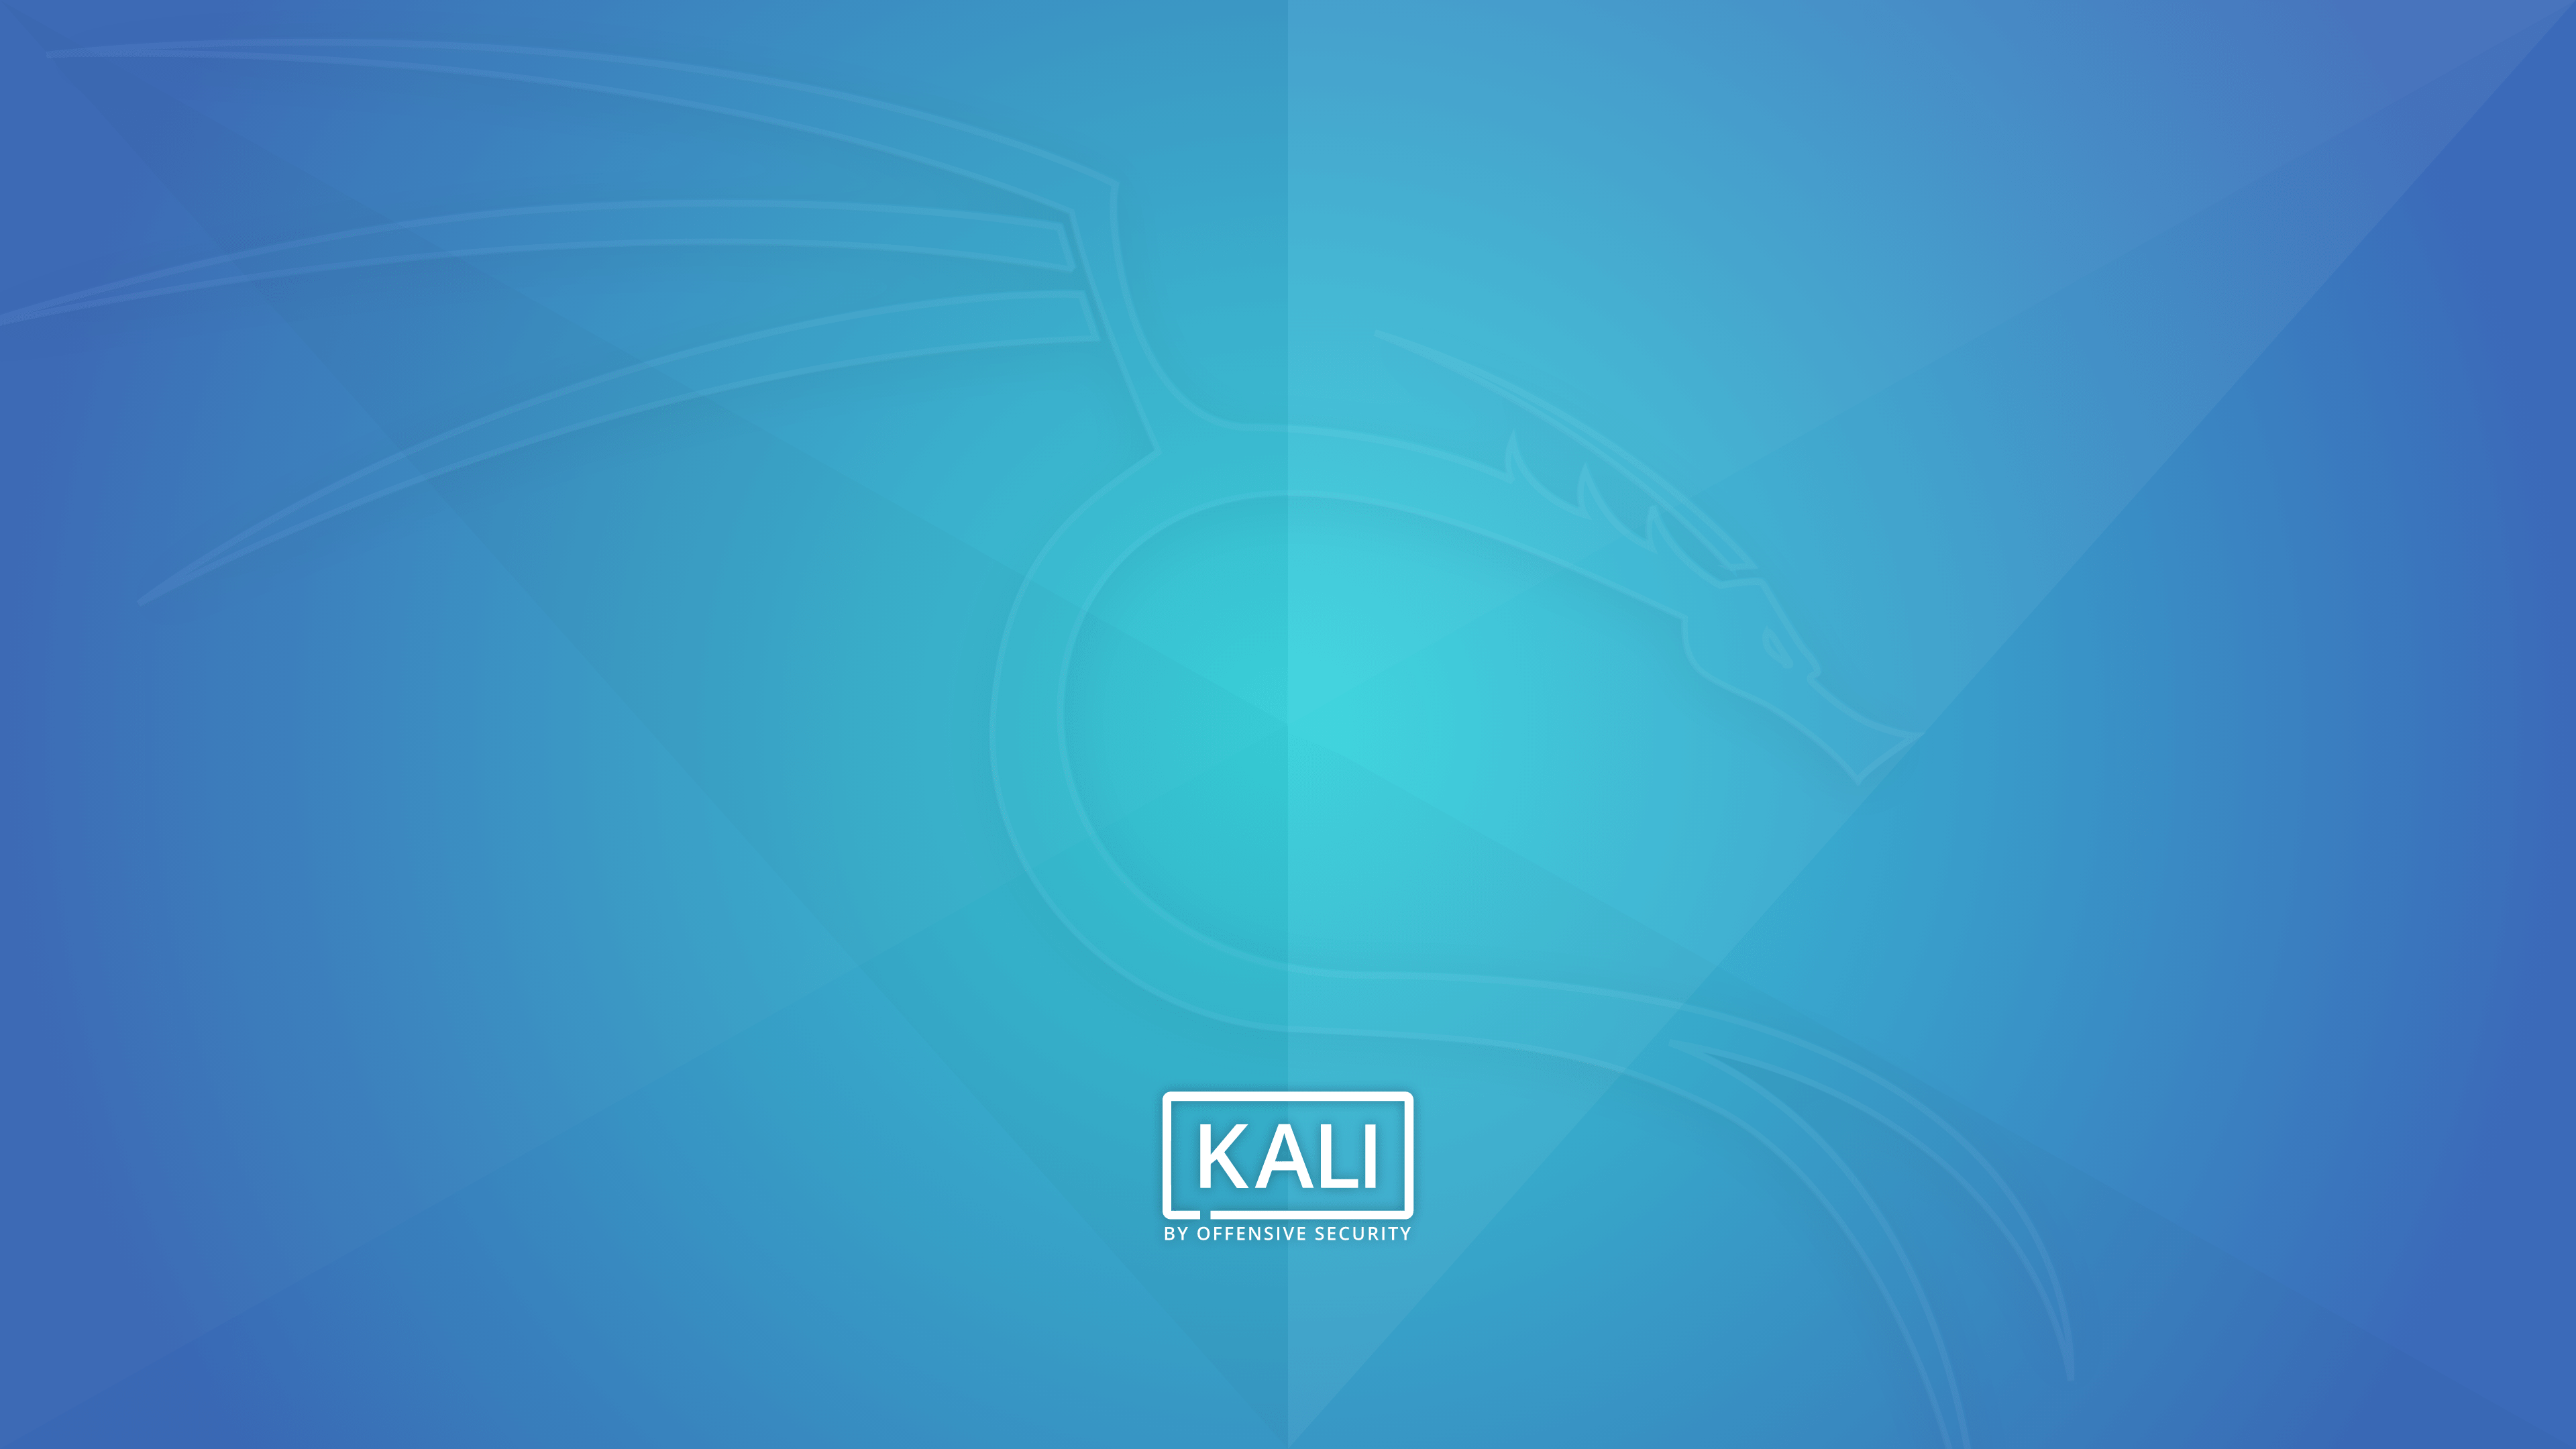 kali linux wallpaper light 4k desktop